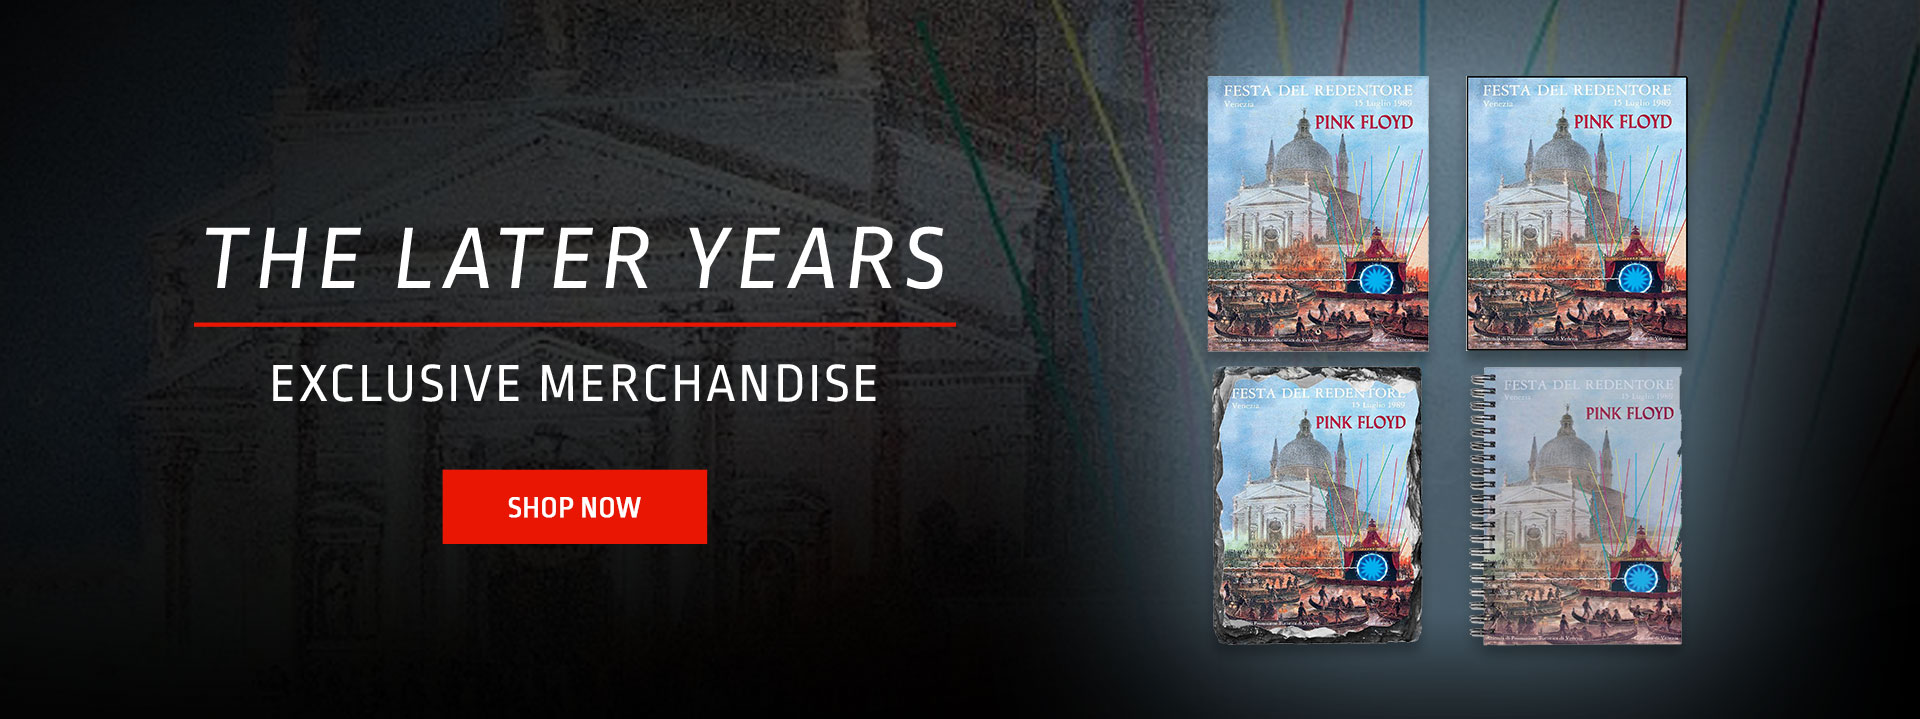 The Later Years - Venice Merchandise